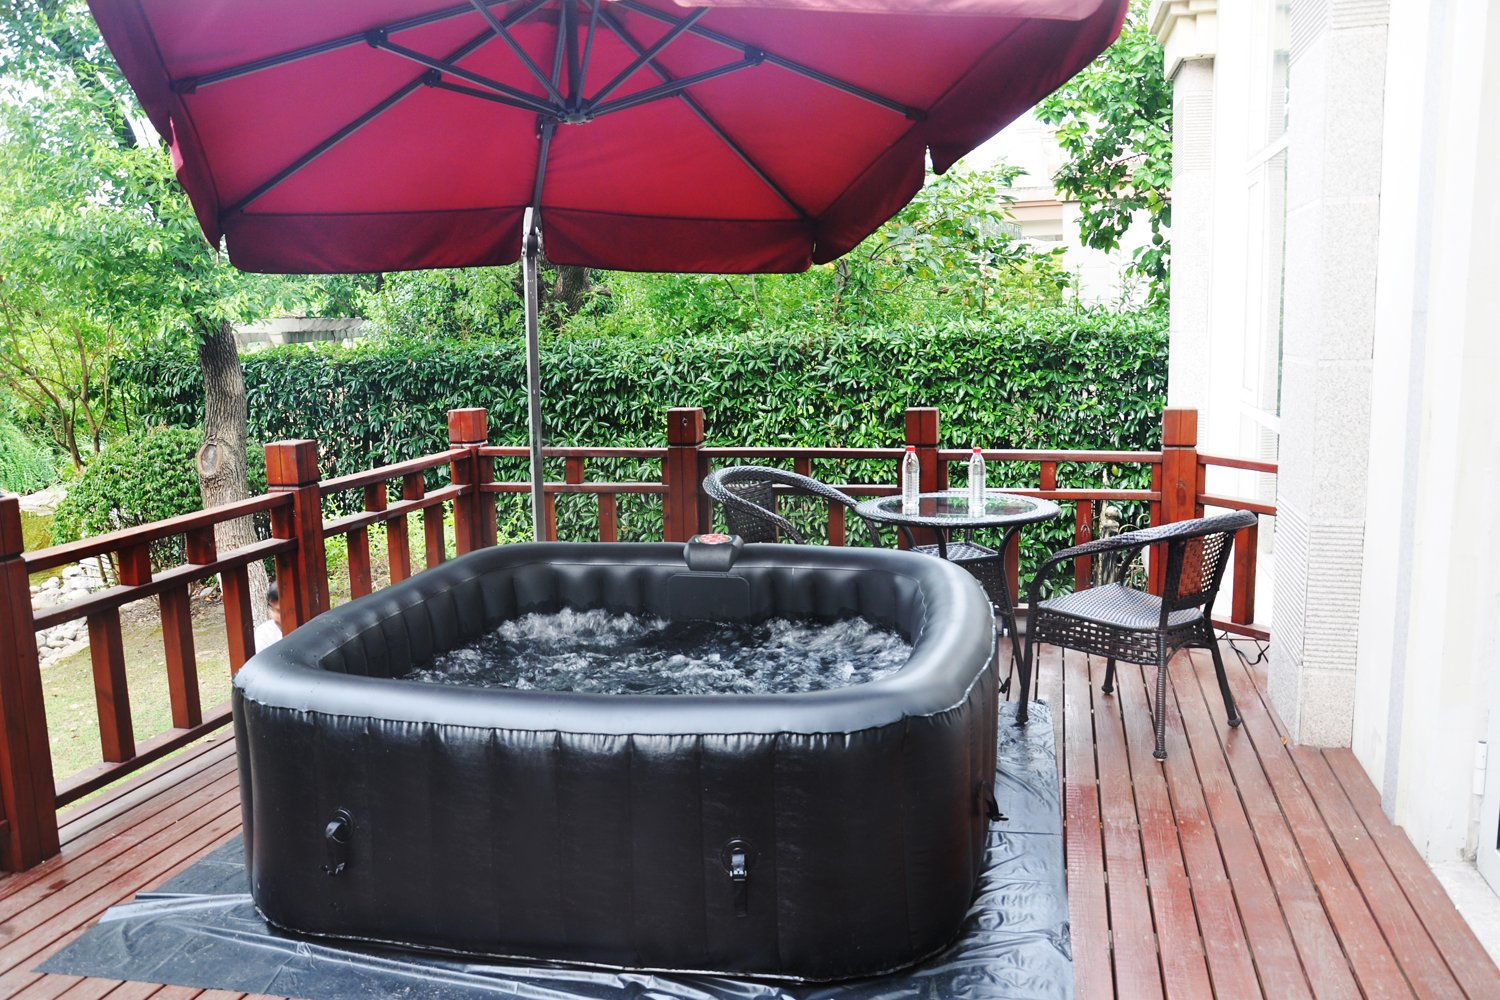 Homax Inflatable 252 Gallons(950 Liter) SPA 6-Person 130 Air Jets Include Accessories Square Portable Hot Tub SPA Easy Plug N Play, Black